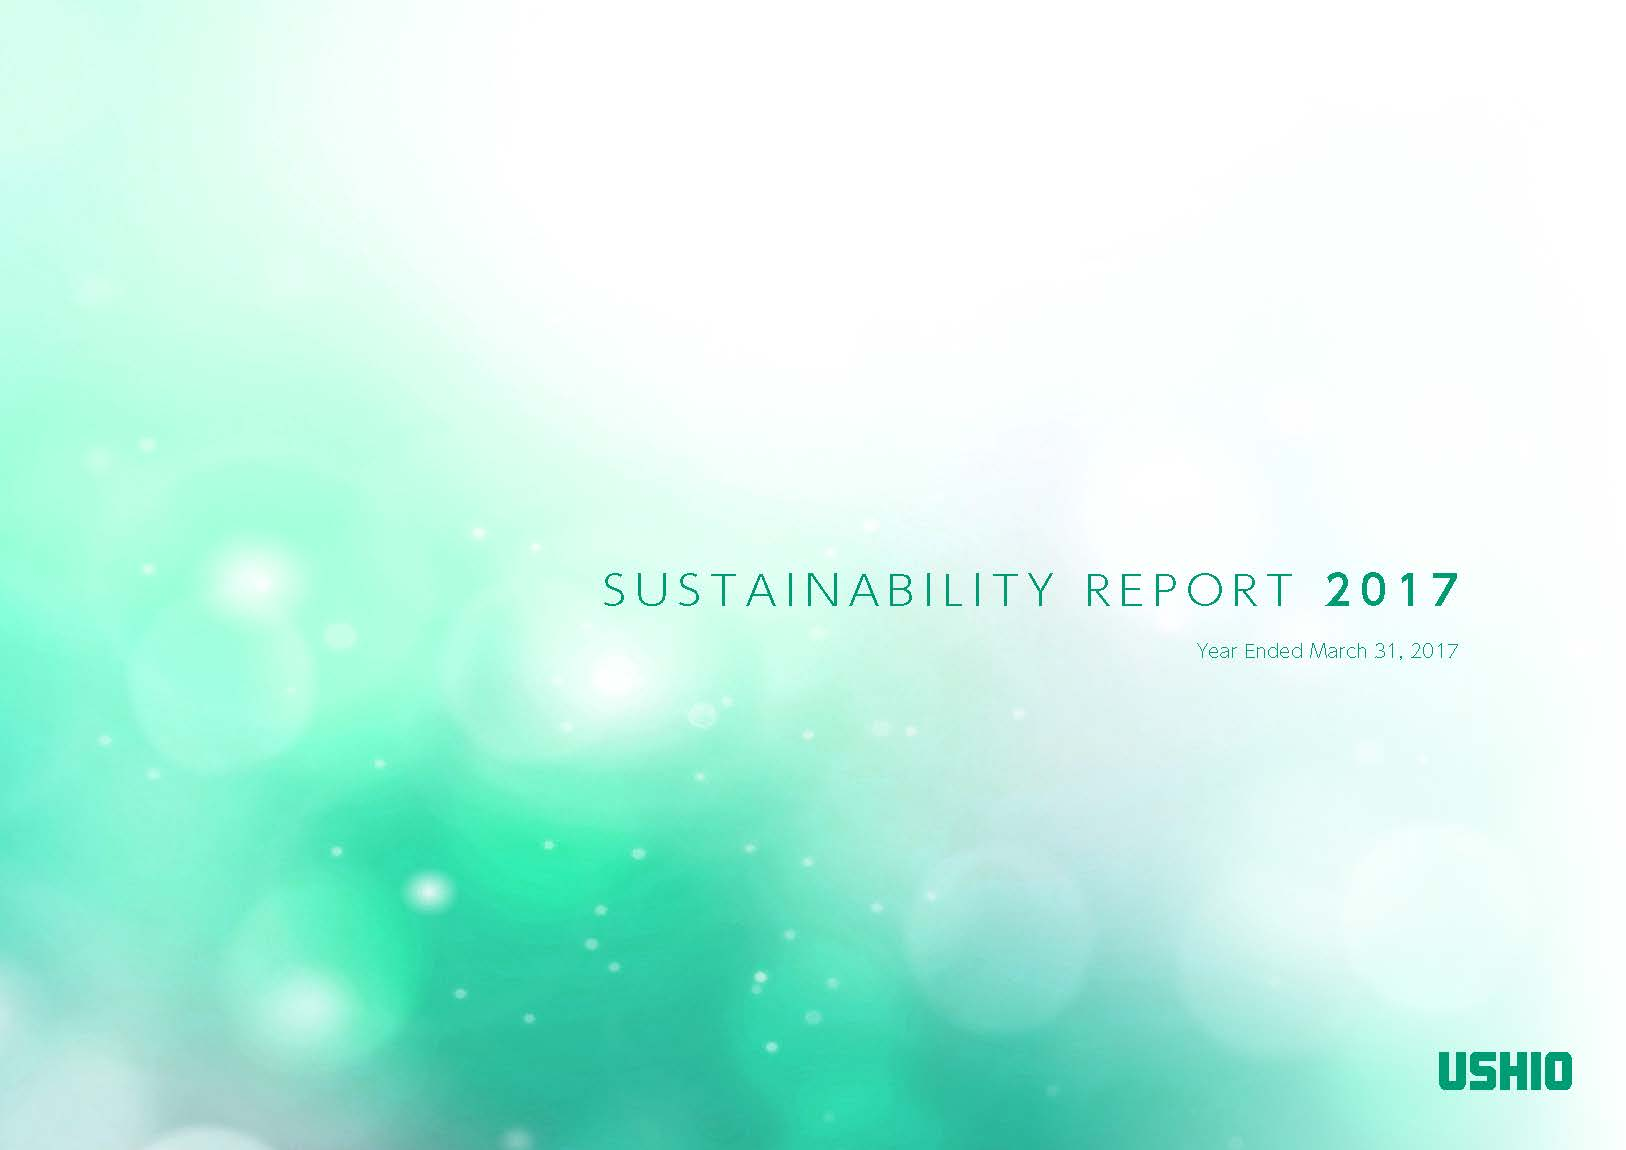 Ushio sustainability report